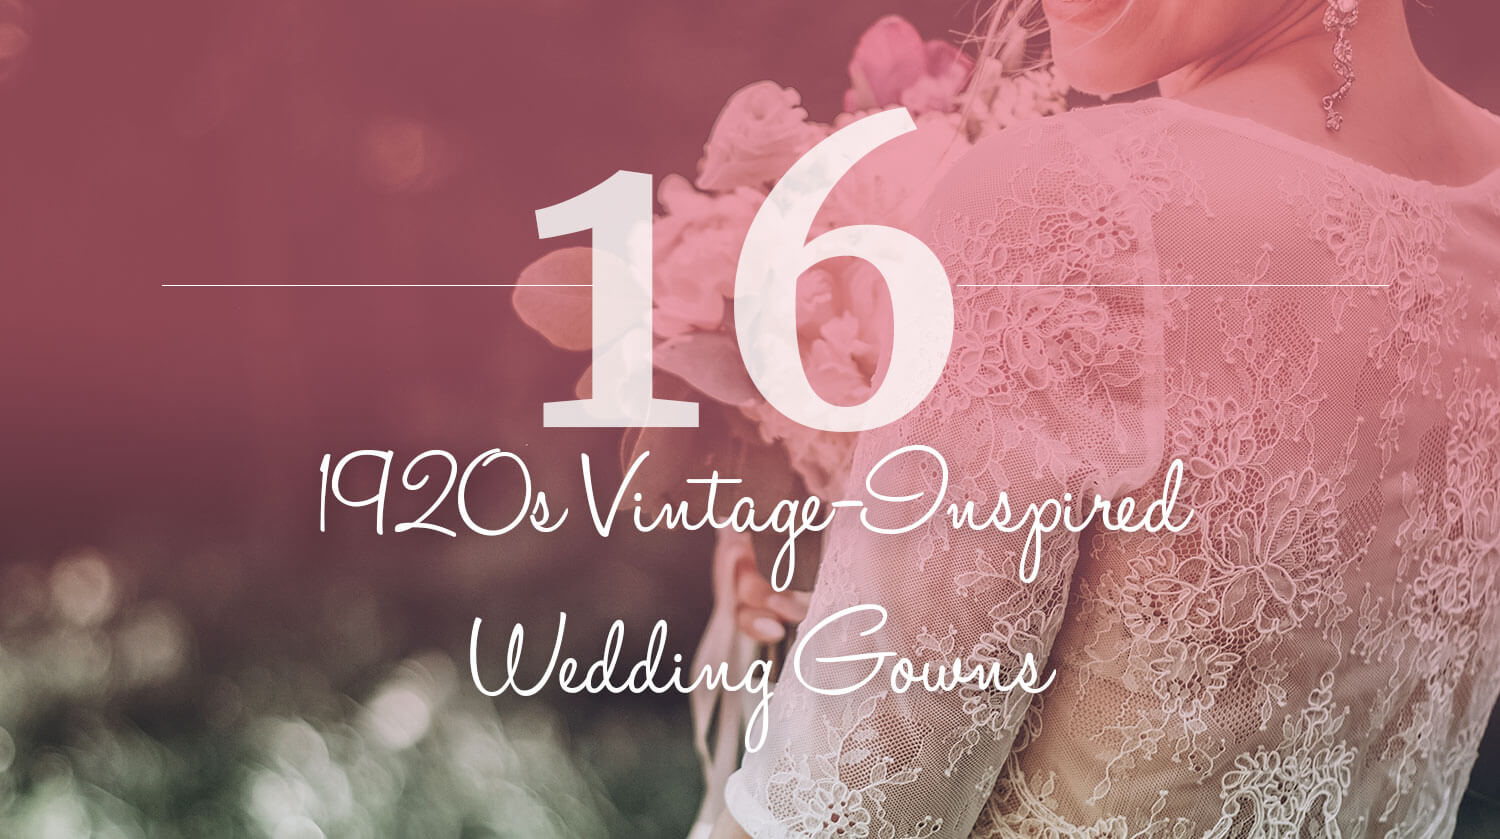 1920s Vintage-Inspired Wedding Gowns